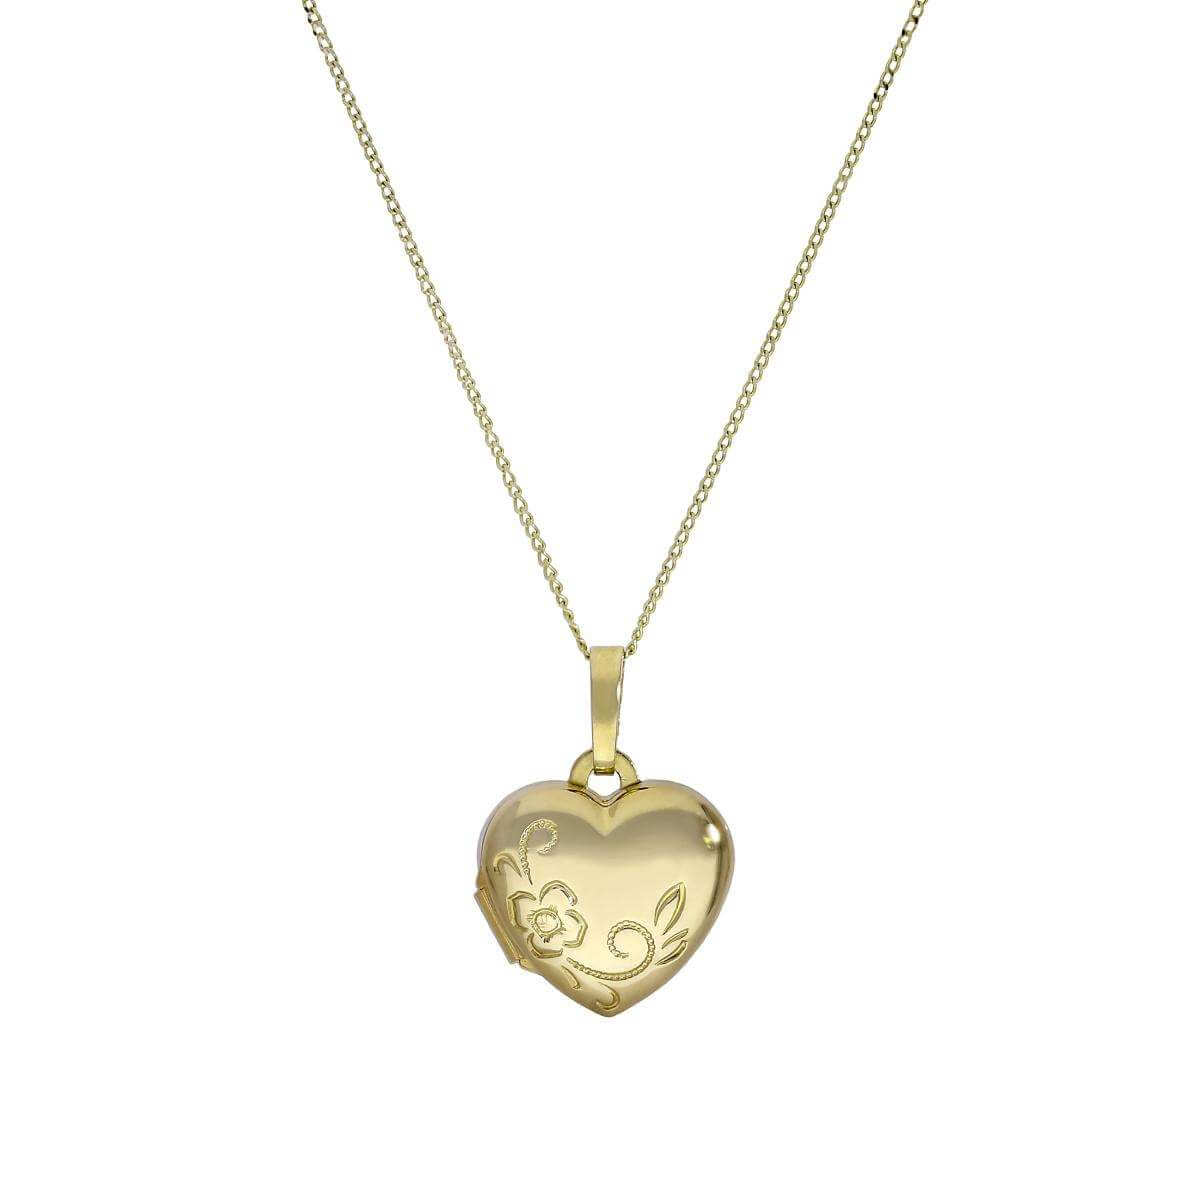 Small 9ct Gold Engravable Heart Locket with Floral Design on Chain 16-20 Inches